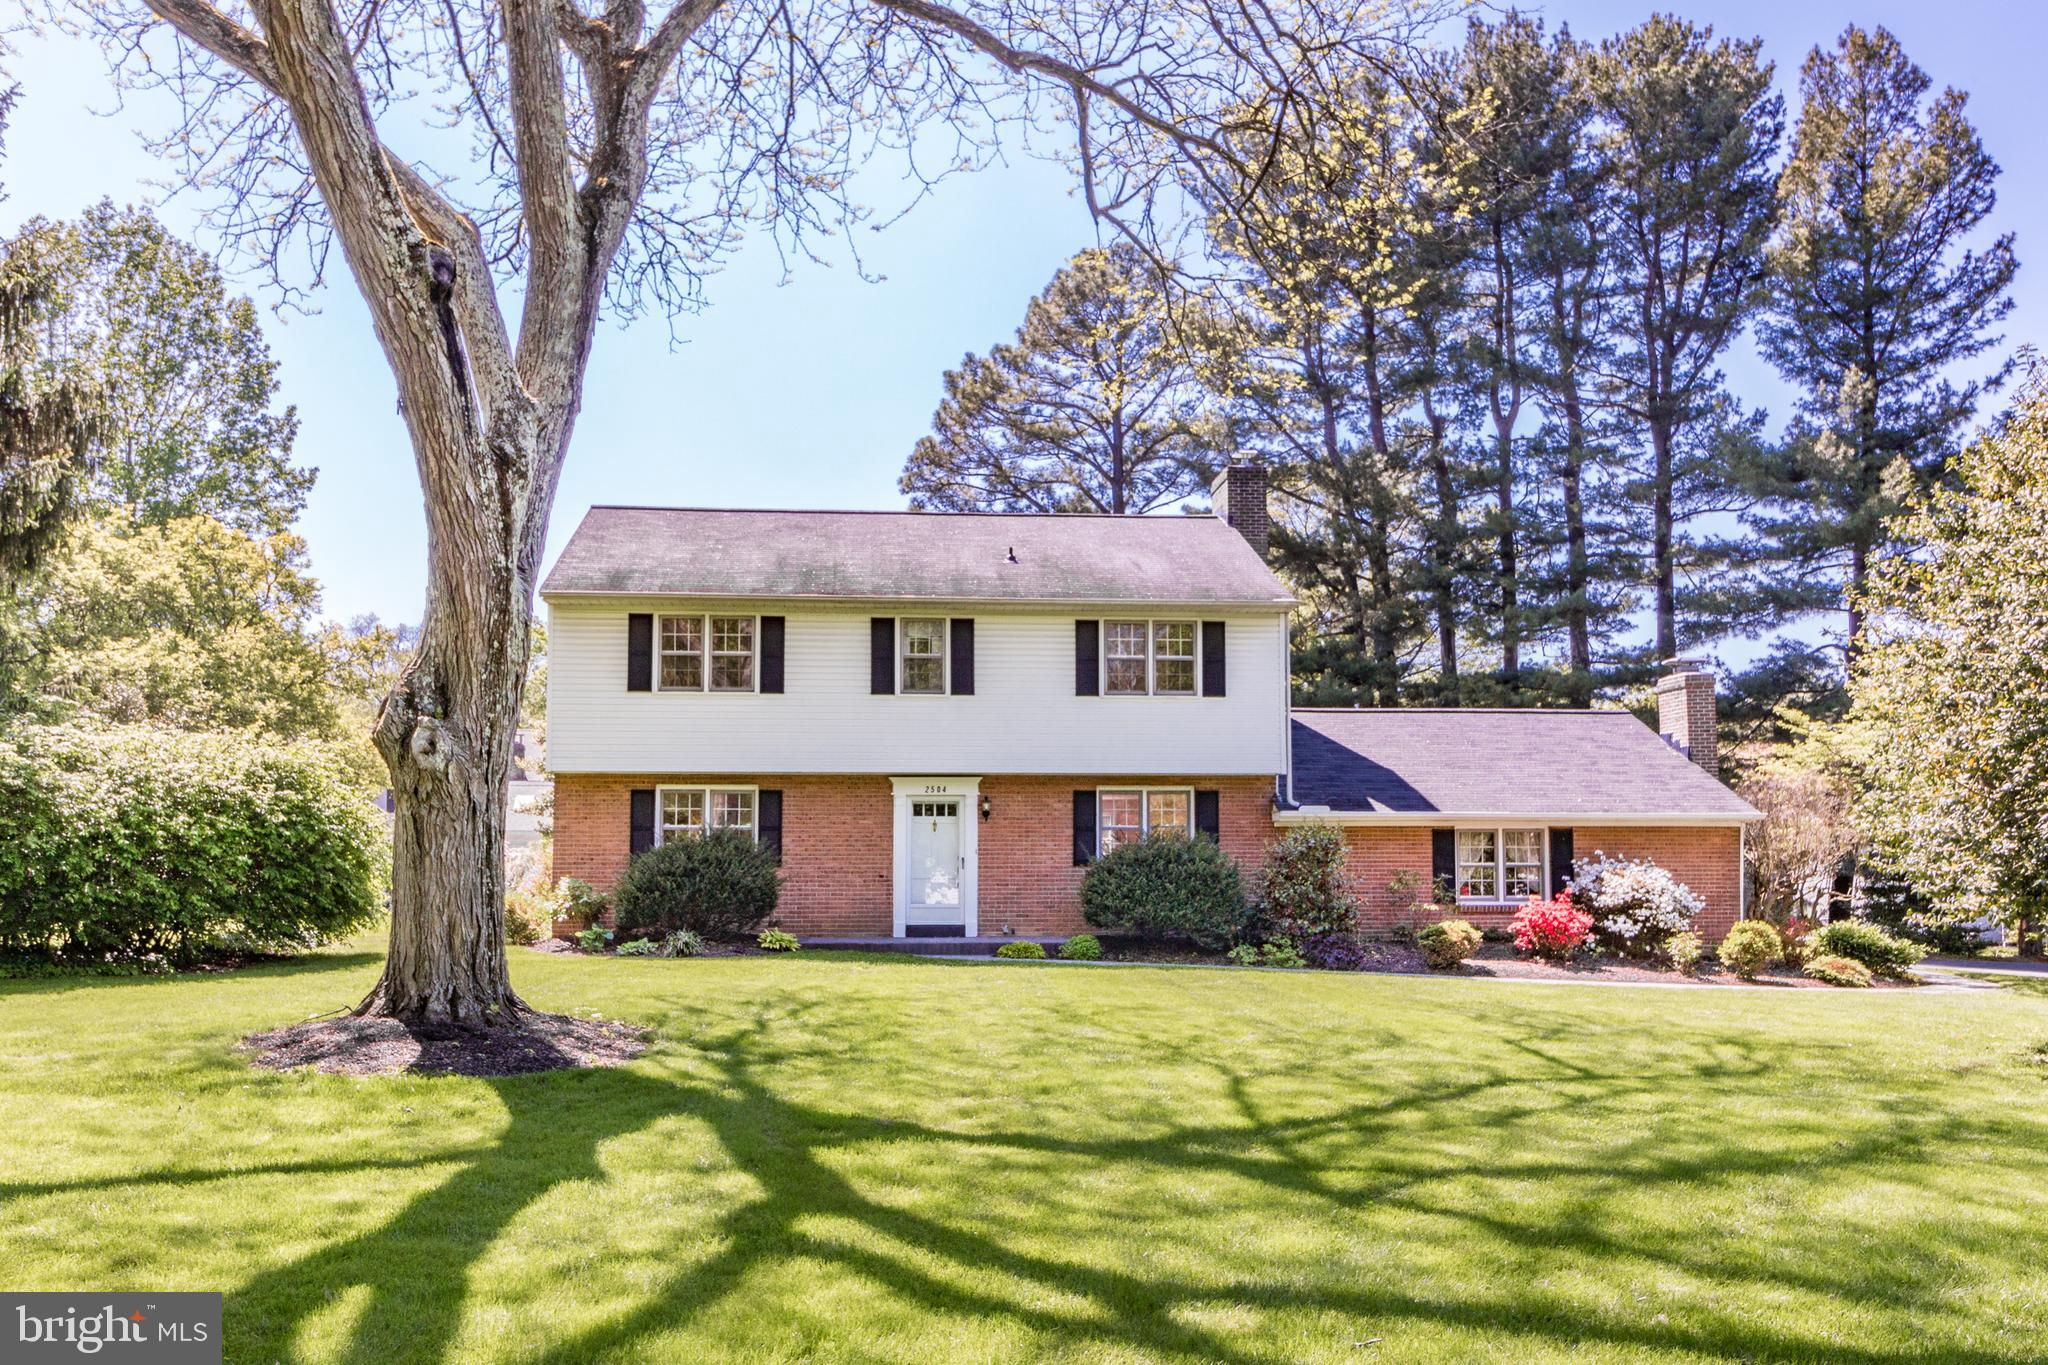 Don't miss out on this beautifully maintained 4 bd, 2 1/2 bath Center Hall Colonial in the desirable tree-lined neighborhood of Foulk Woods! The curb appeal is undeniable with gorgeous mature landscaping, private backyard oasis and side entry two car garage on a spacious .65 acre corner lot! Enter into the warm and inviting foyer with fresh, neutral paint and hardwood flooring that runs throughout both levels. To your right is a formal living room with a gas fireplace and to the left is a light-filled dining room with chair rail and crown molding. The dining room leads into the updated eat-in kitchen with maple cabinets, stand up bar with custom barstools, update tile backsplash and granite countertops with all of the bells and whistles of a custom designed Giorgi Kitchen. Adjacent to the kitchen is a remodeled powder room. Off the living room is a large sunken family room with the second gas fireplace flanked by built-ins. This cozy room has overheight exposed wood beams, brand new carpet with tiled area as you come in from the garage.The rear of the house offers a bright updated sunroom with wainscoting, plank flooring and large sliding windows for all season enjoyment.  The sunroom leads to a stamped concrete patio with wall seating surrounding the built-in copper fire pit. On the second floor the master suite offers two large closets and an updated full bath. There are three additional bright and airy bedrooms which share a remodeled hall bath. The unfinished basement is currently used for storage but could easily be converted to usable living space. Recent updates include epoxy garage floor, expanded and repaved driveway, stamped concrete patio, walkway and walls, attic insulation, HVAC system, water heater, new paint throughout. Conveniently located to Route 202, I-95, area shopping, restaurants and more! Schedule your tour today! For Virtual Tour go to https://www.youtube.com/watch?v=qKudHRC-XJs